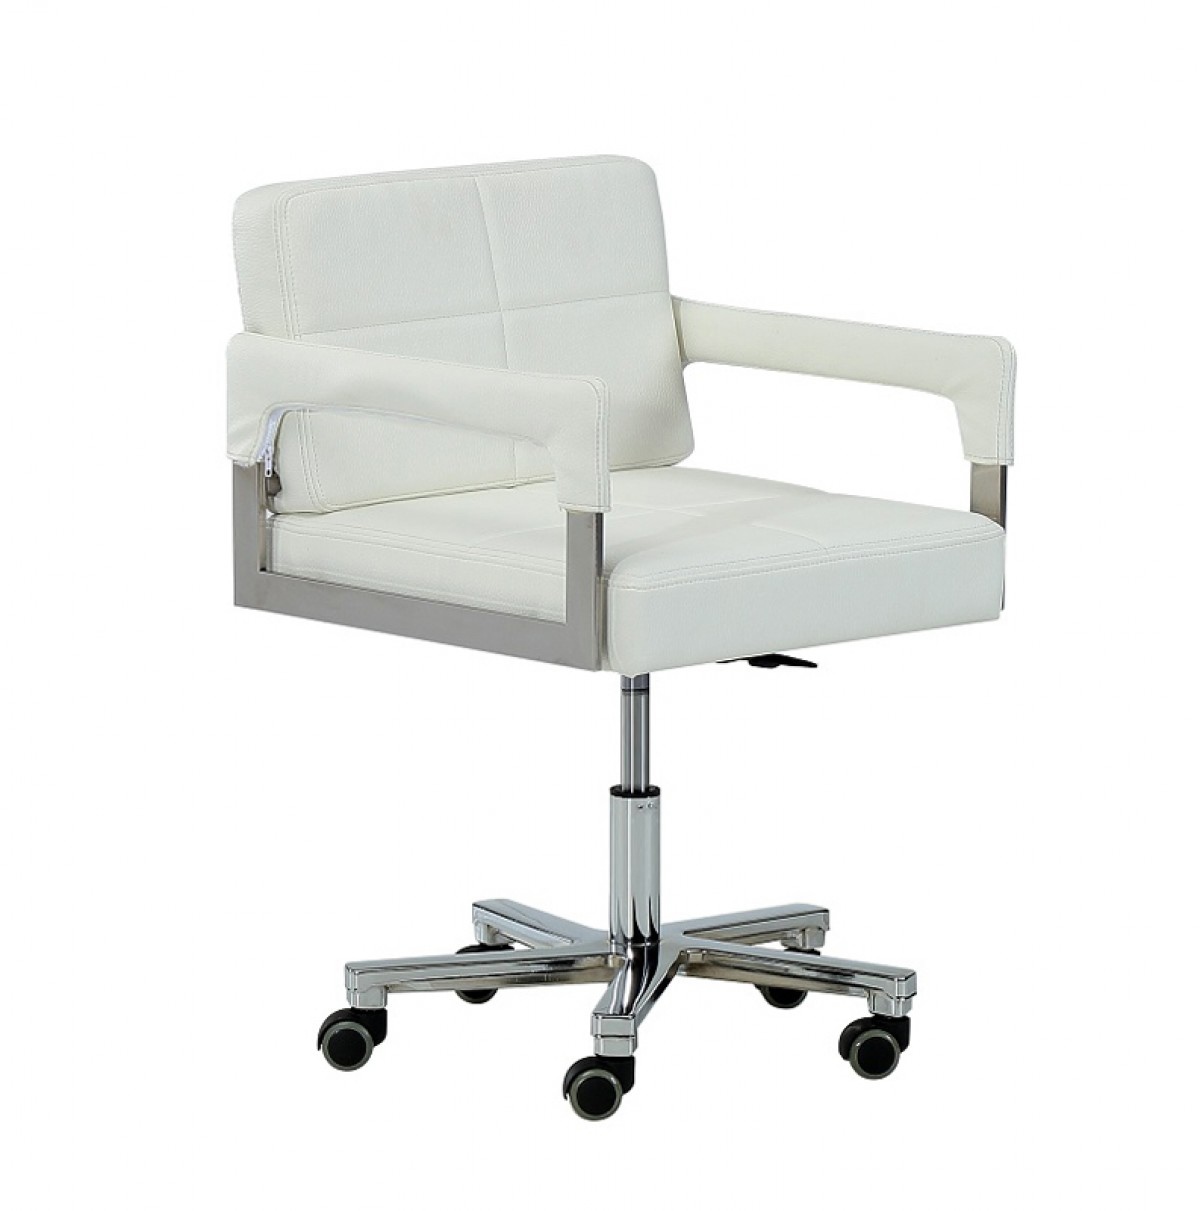 Modrest craig modern white bonded leather office chair for Modern leather office chairs